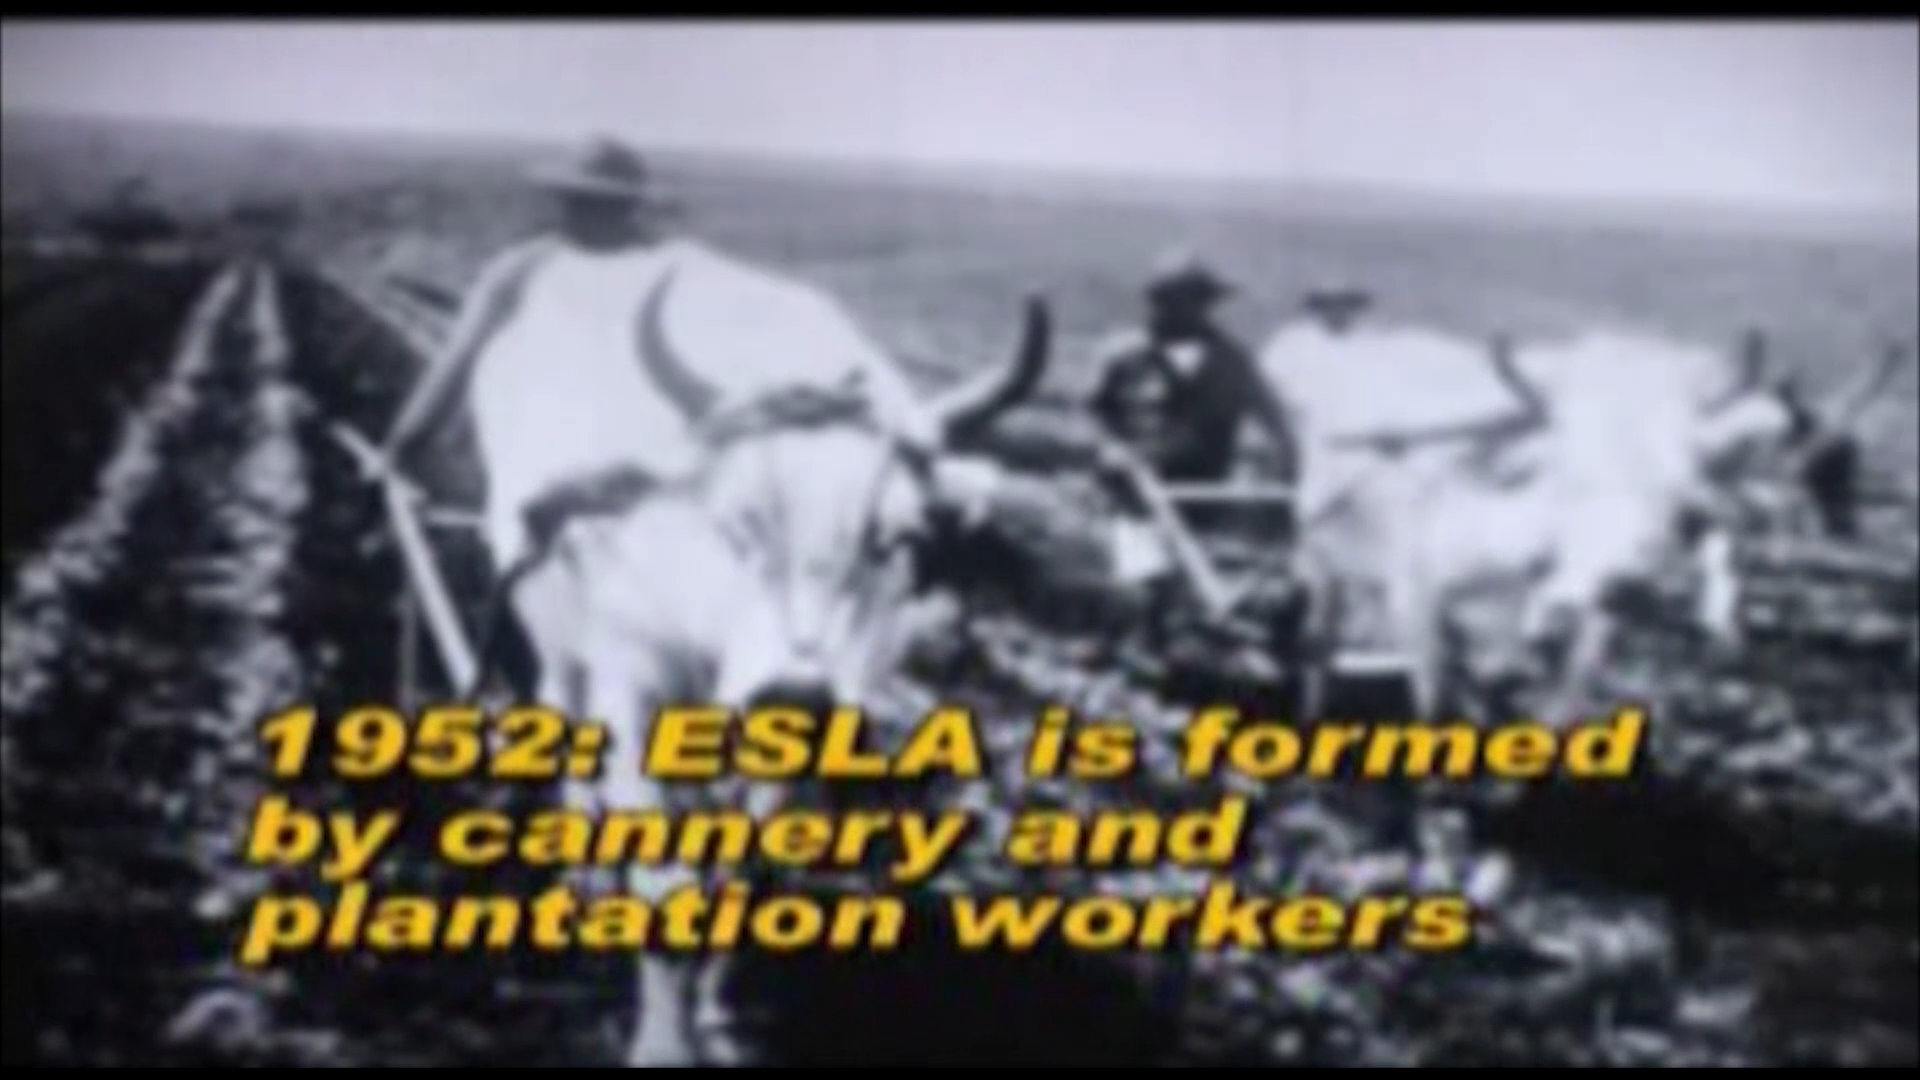 ESLA is formed by cannery and plantation workers